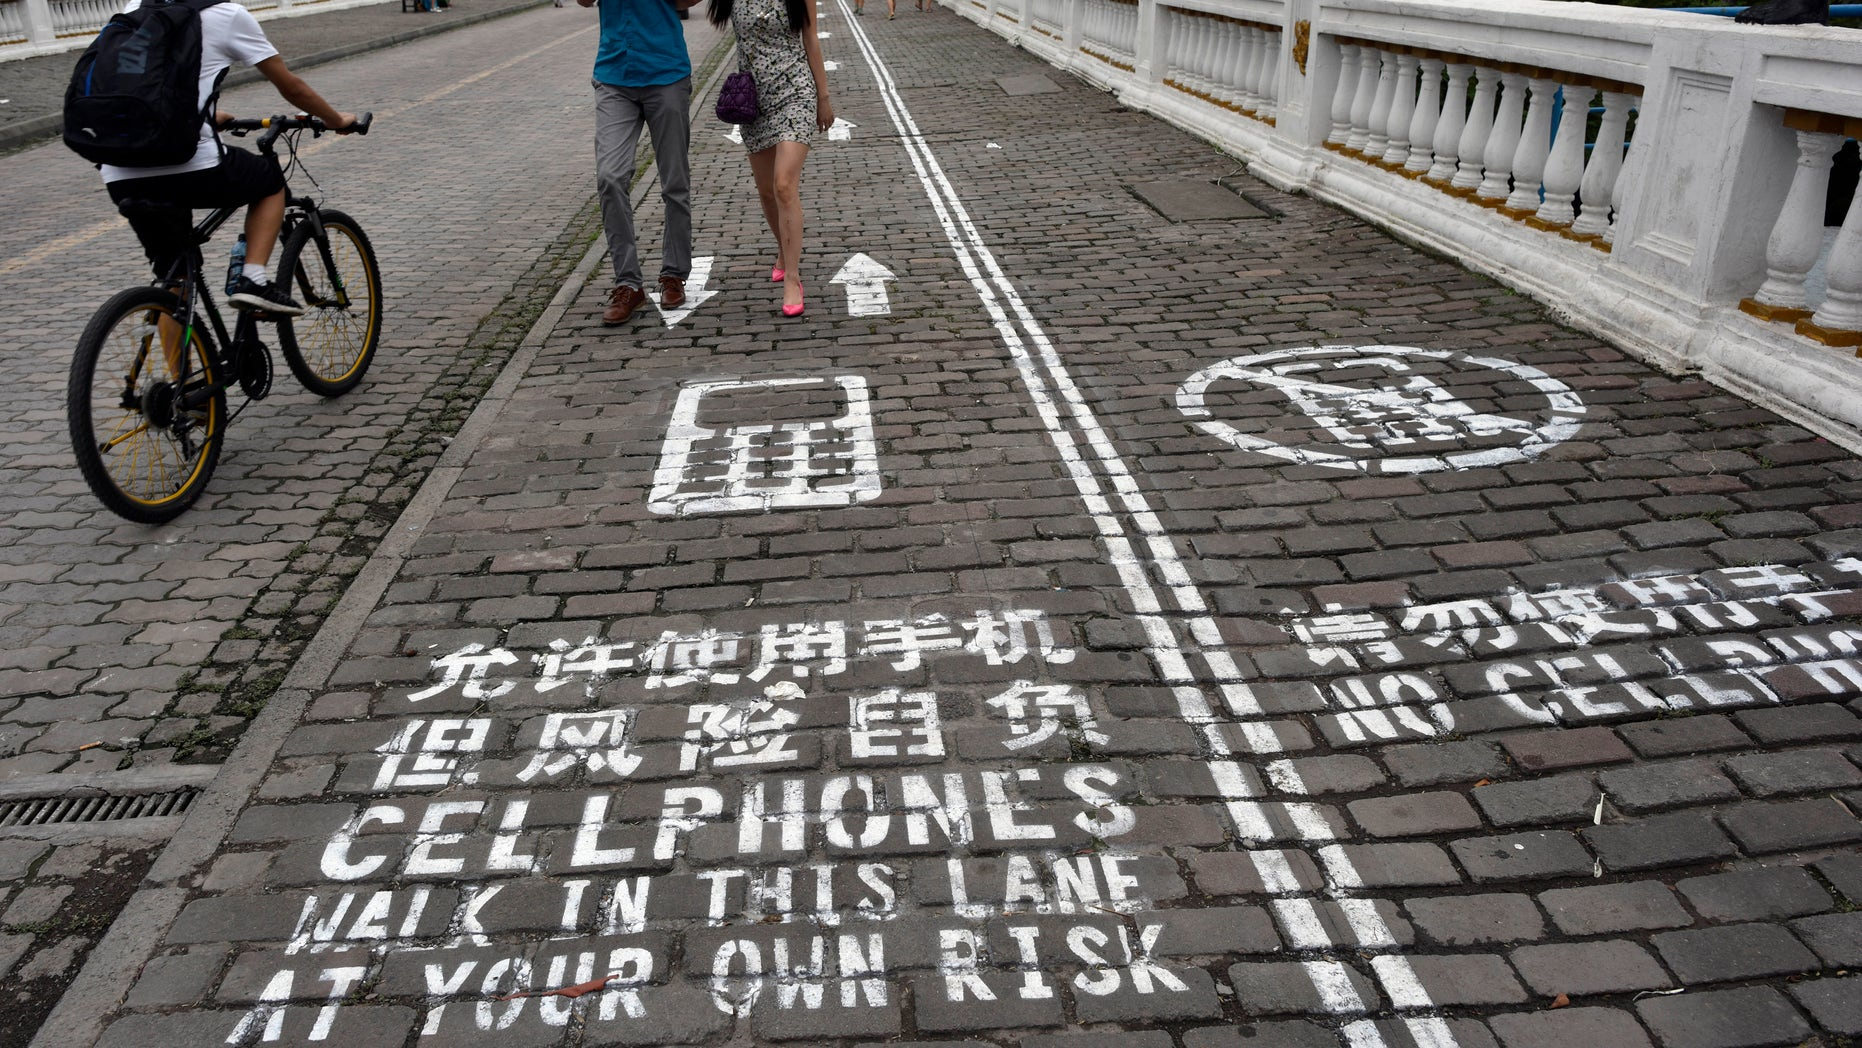 "A man rides his bicycle as people walk on the ""first mobile phone sidewalk in China"", which was recently installed at a tourism area in Chongqing municipality, September 13, 2014. The mobile phone sidewalk in Chongqing was divided into two sides -- one was written with ""Cellphones walk in this lane at your own risk"" while the other with ""No cellphones"", as an attempt to reduce pedestrian incidents, local media reported. Picture taken September 13, 2014. REUTERS/China Daily"